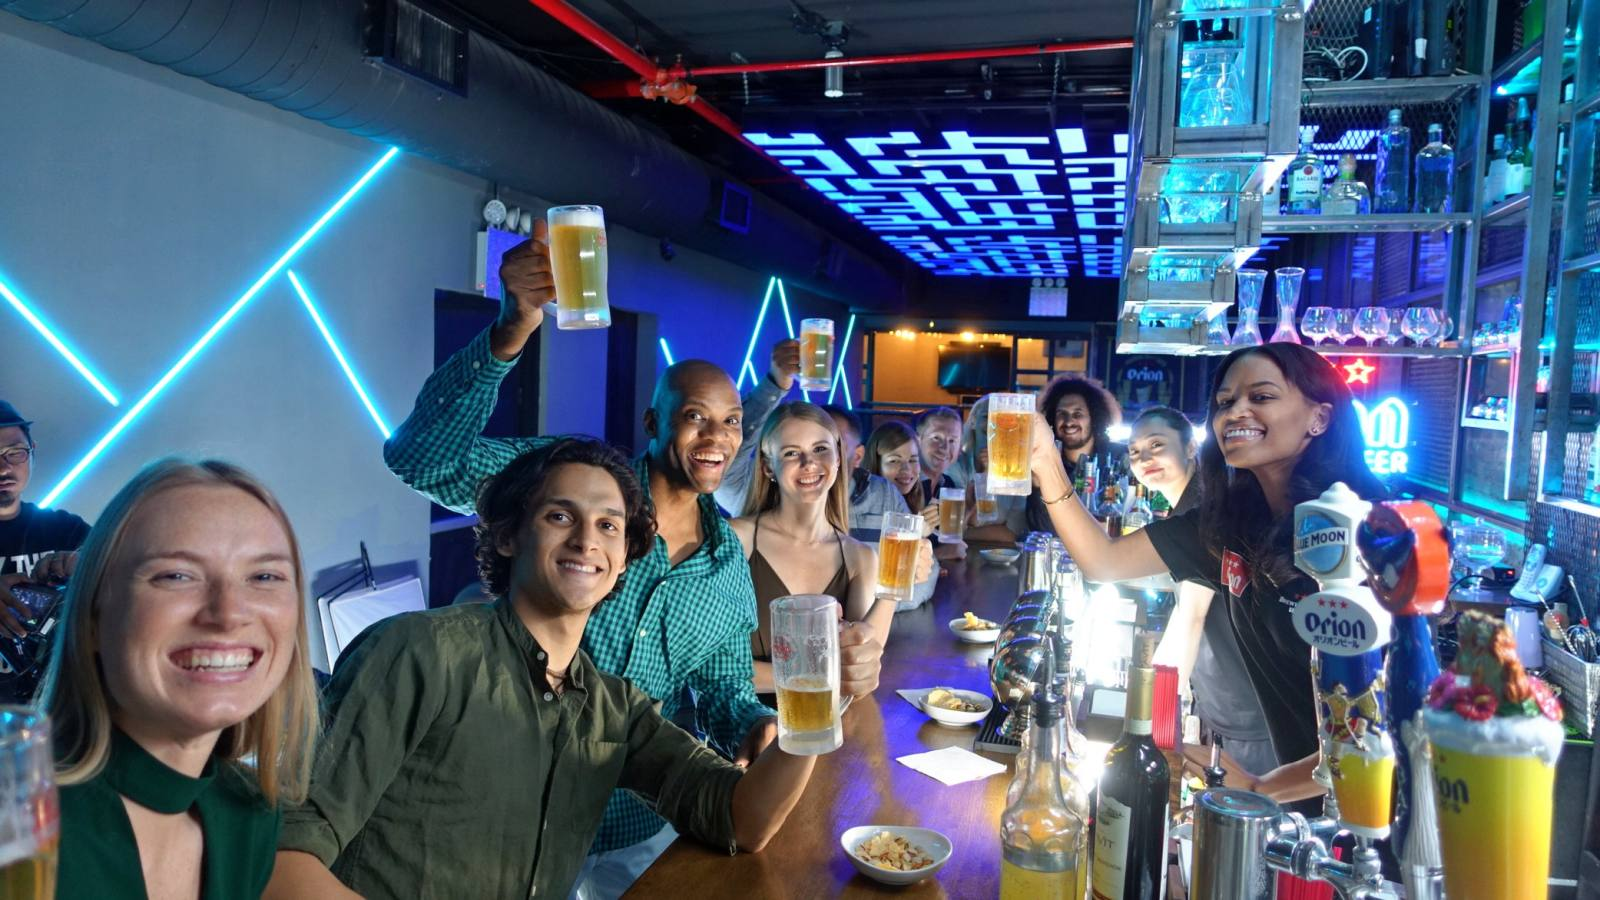 Orion films a commercial at a New York City bar. The Okinawa brewer has built up a following in the U.S., thanks in part to returning military personnel.